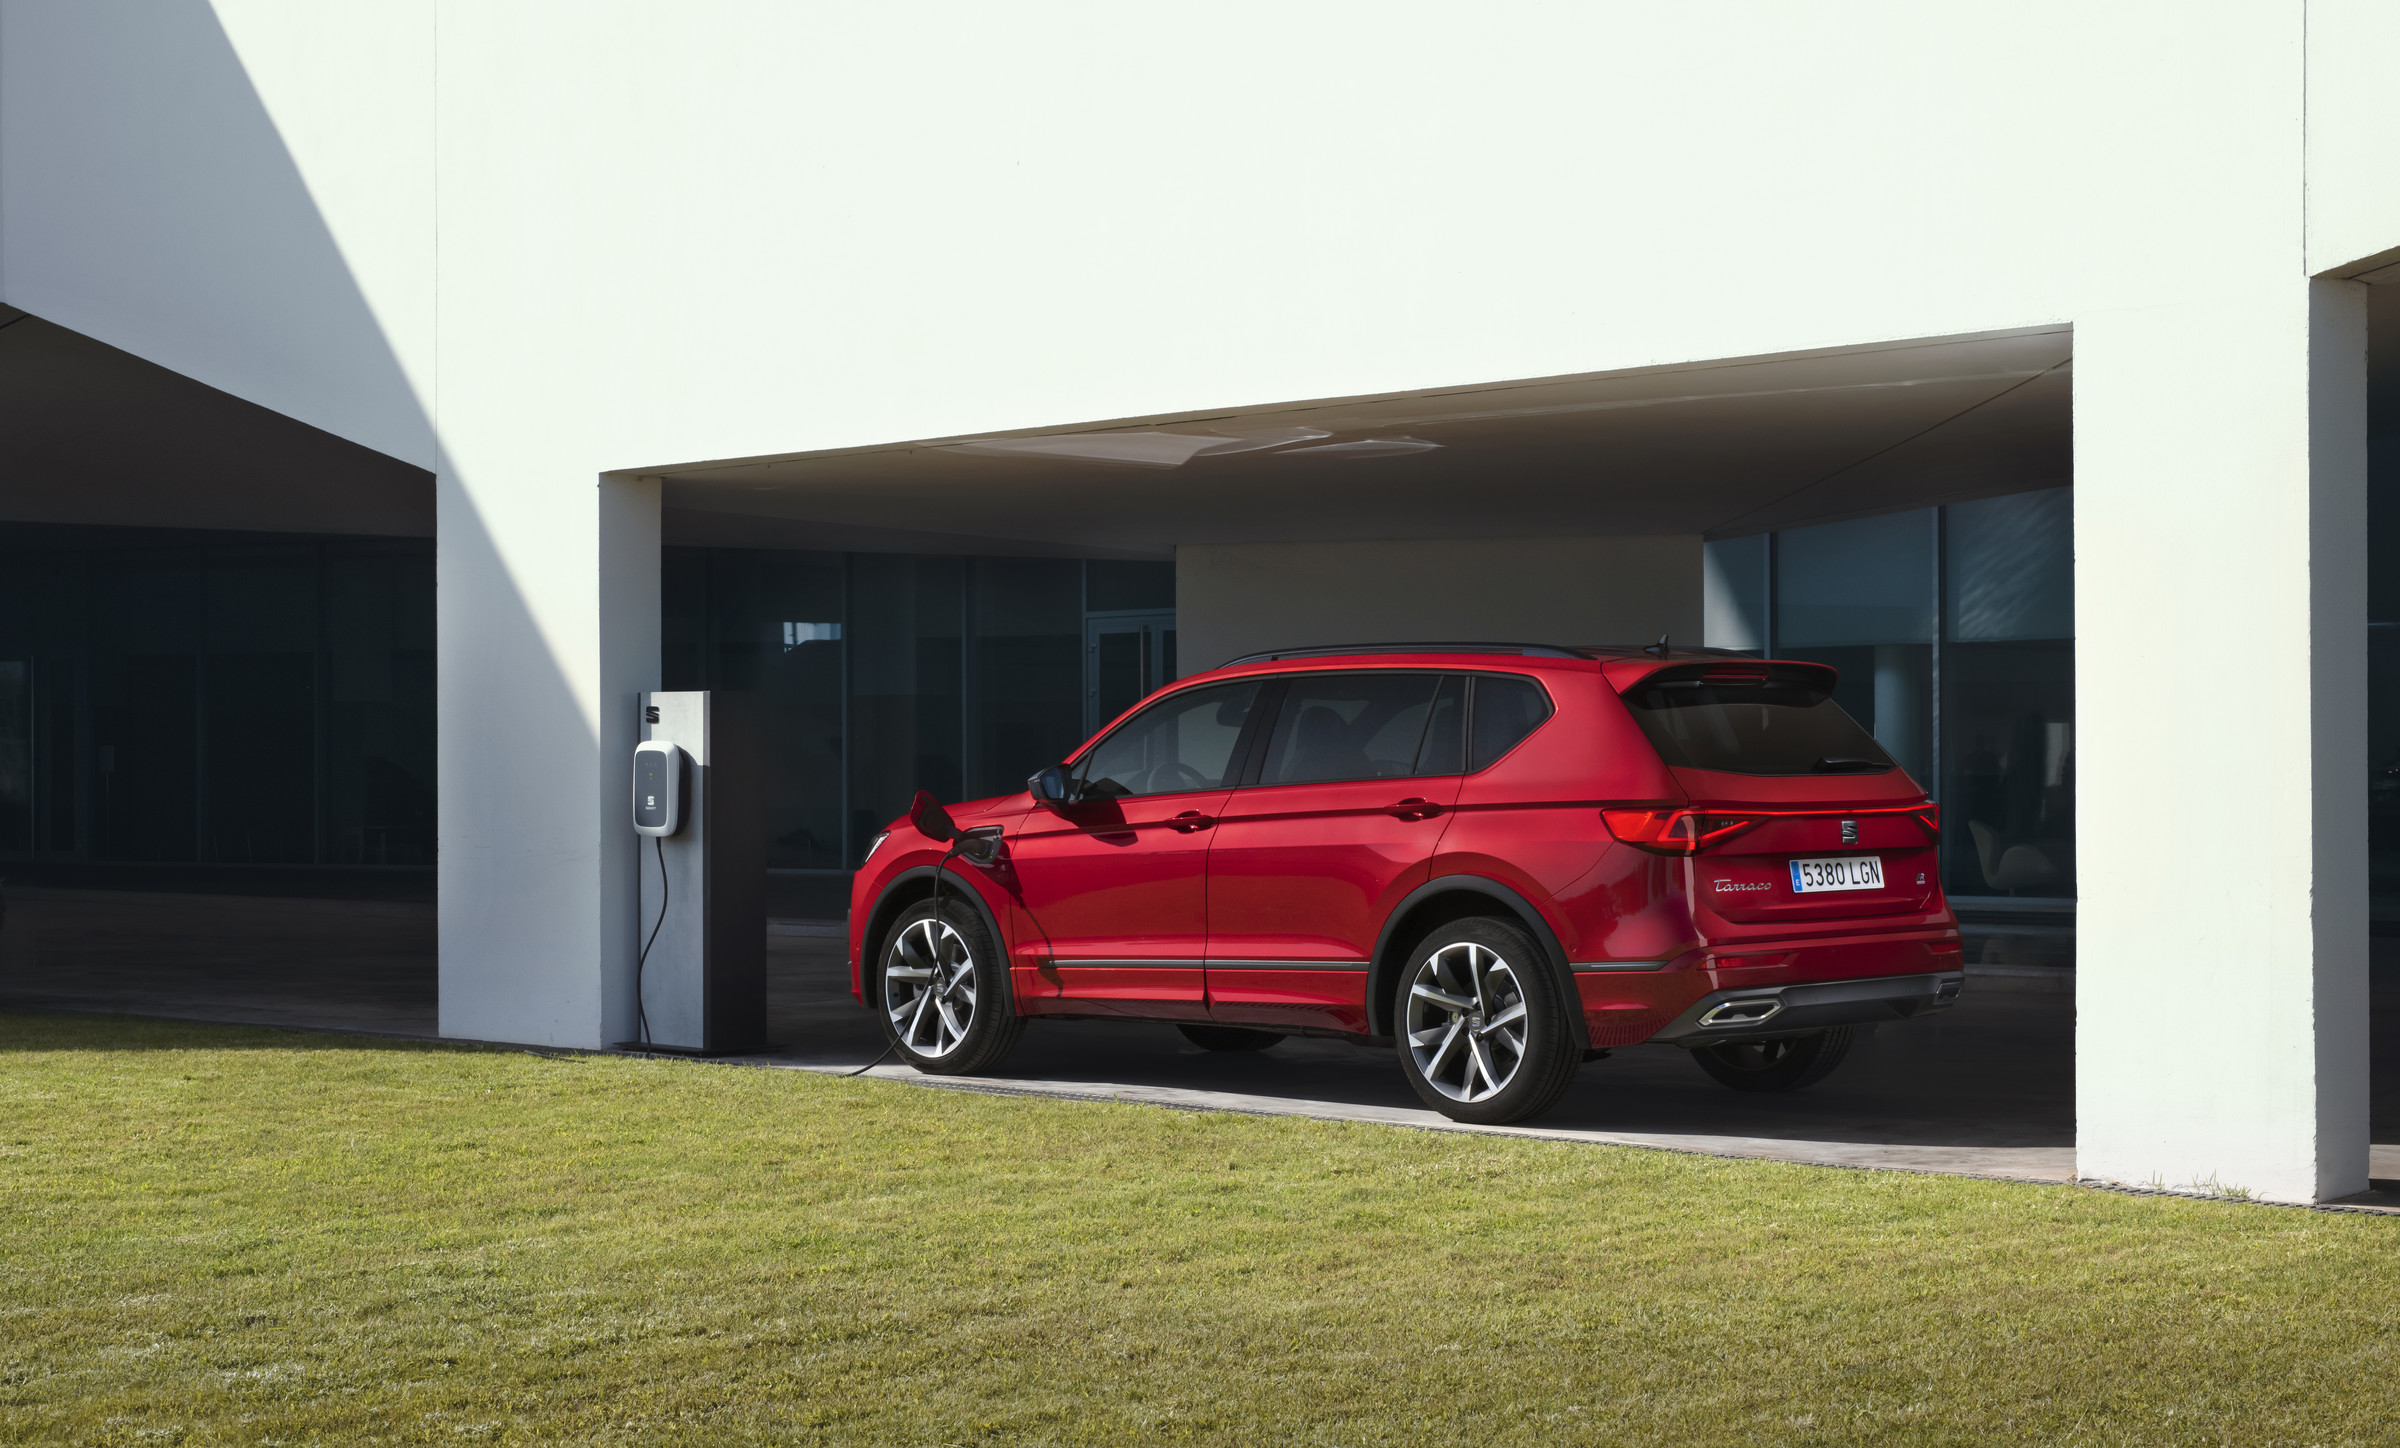 SEAT-electrifies-its-large-SUV-as-the-Tarraco-e-HYBRID-enters-p.jpeg